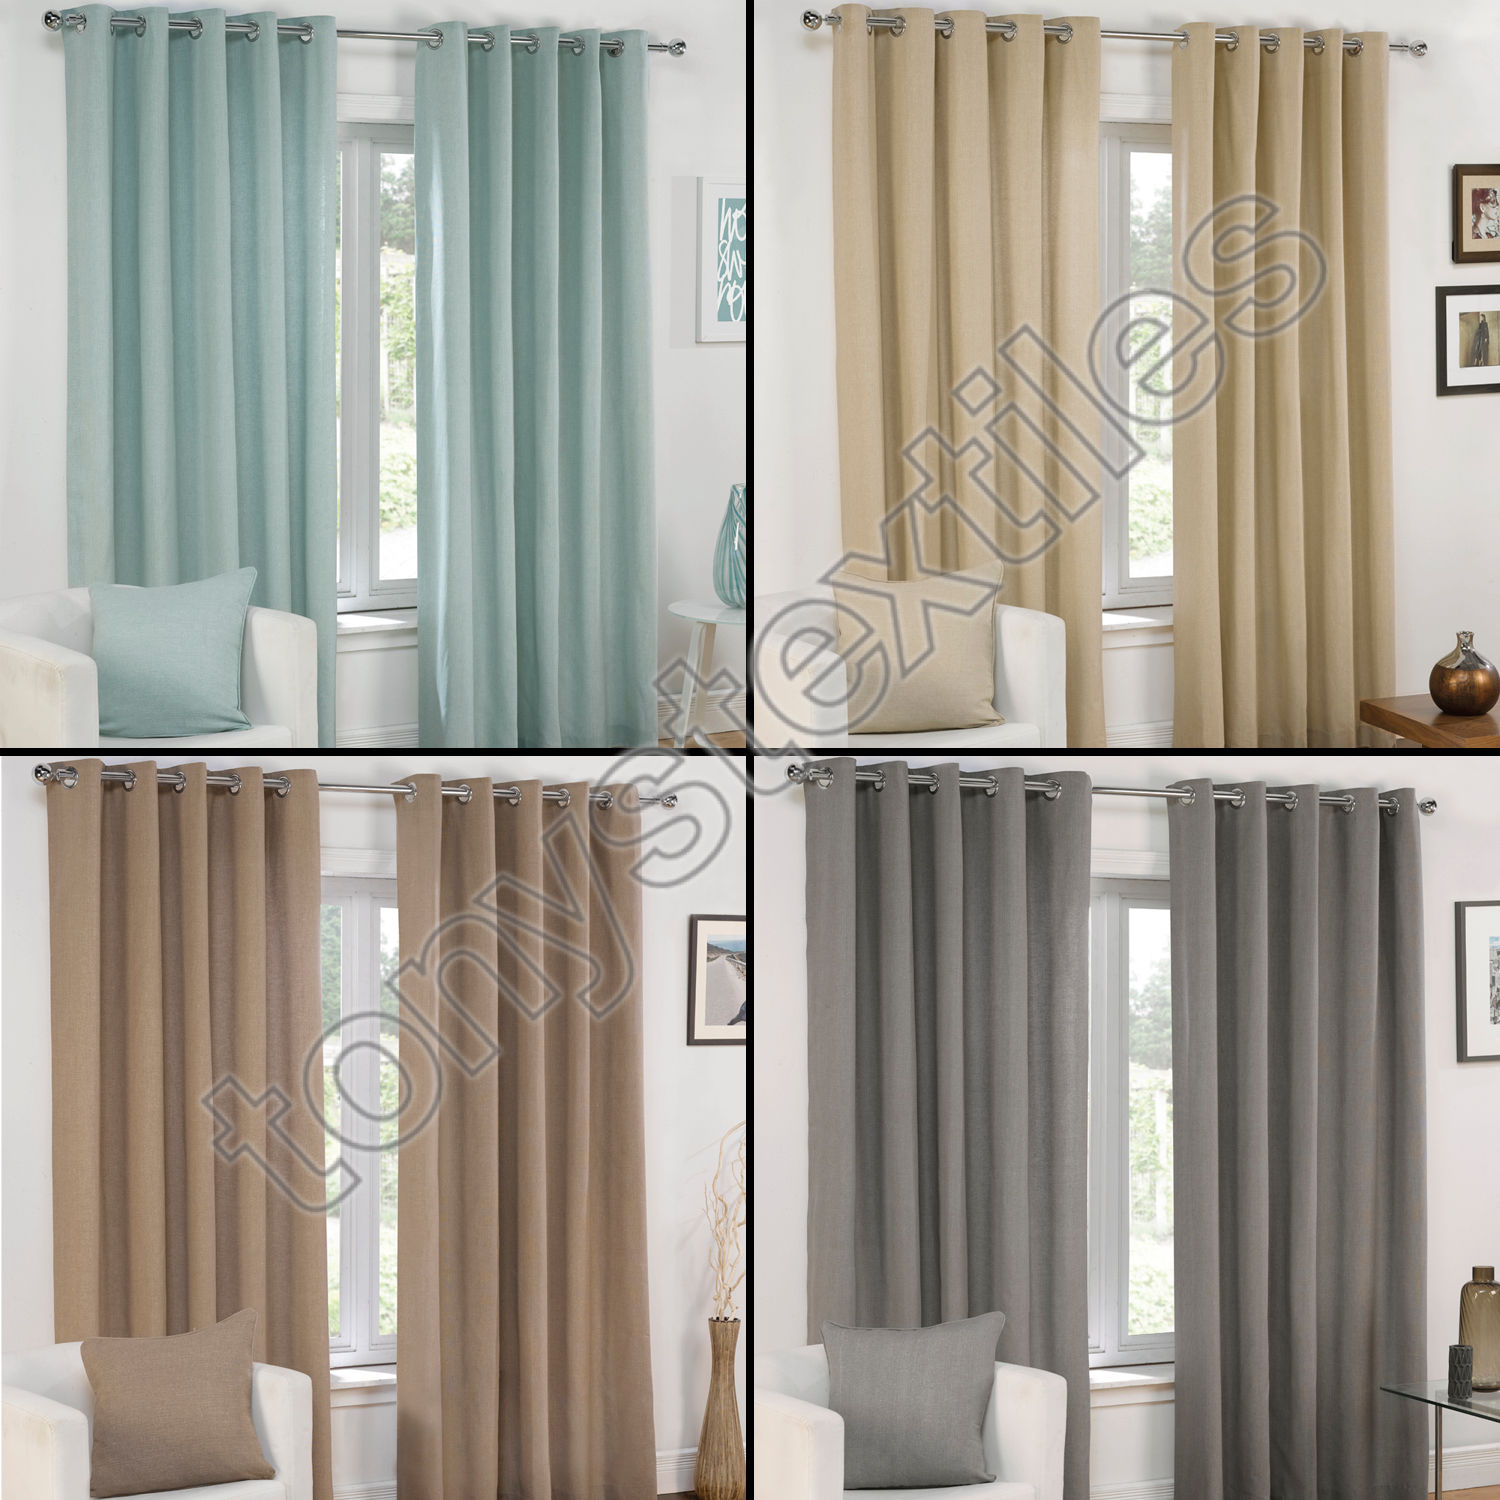 plain eyelet grommet fully lined pair window curtains cream gray blue brown ebay. Black Bedroom Furniture Sets. Home Design Ideas